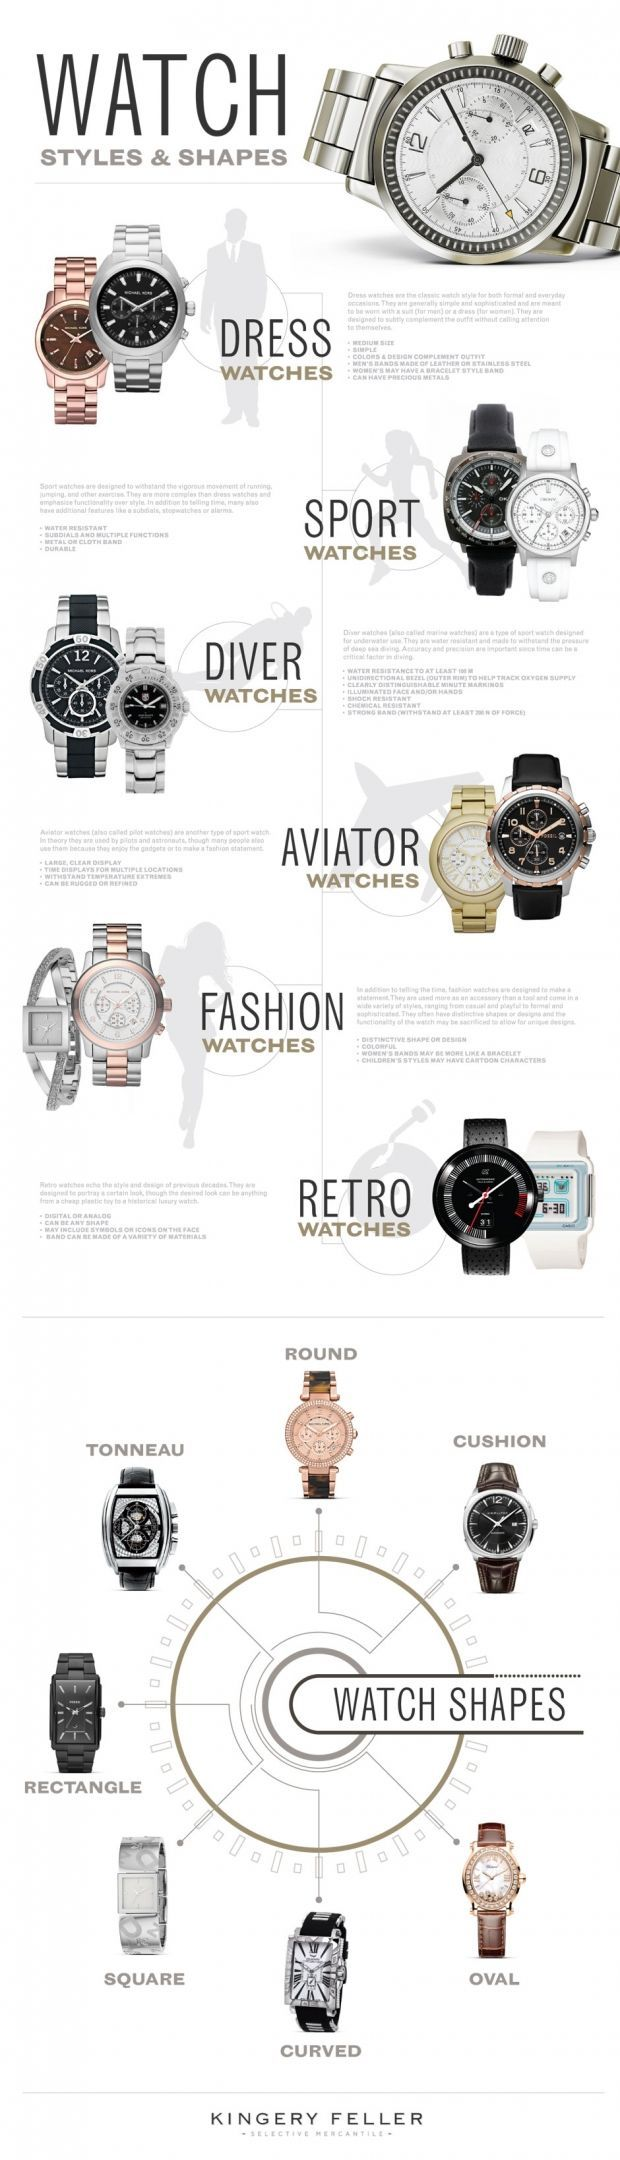 Men's Watch - Guide Visit http://www.TheLAFashion.com for Fashion insights and tips.